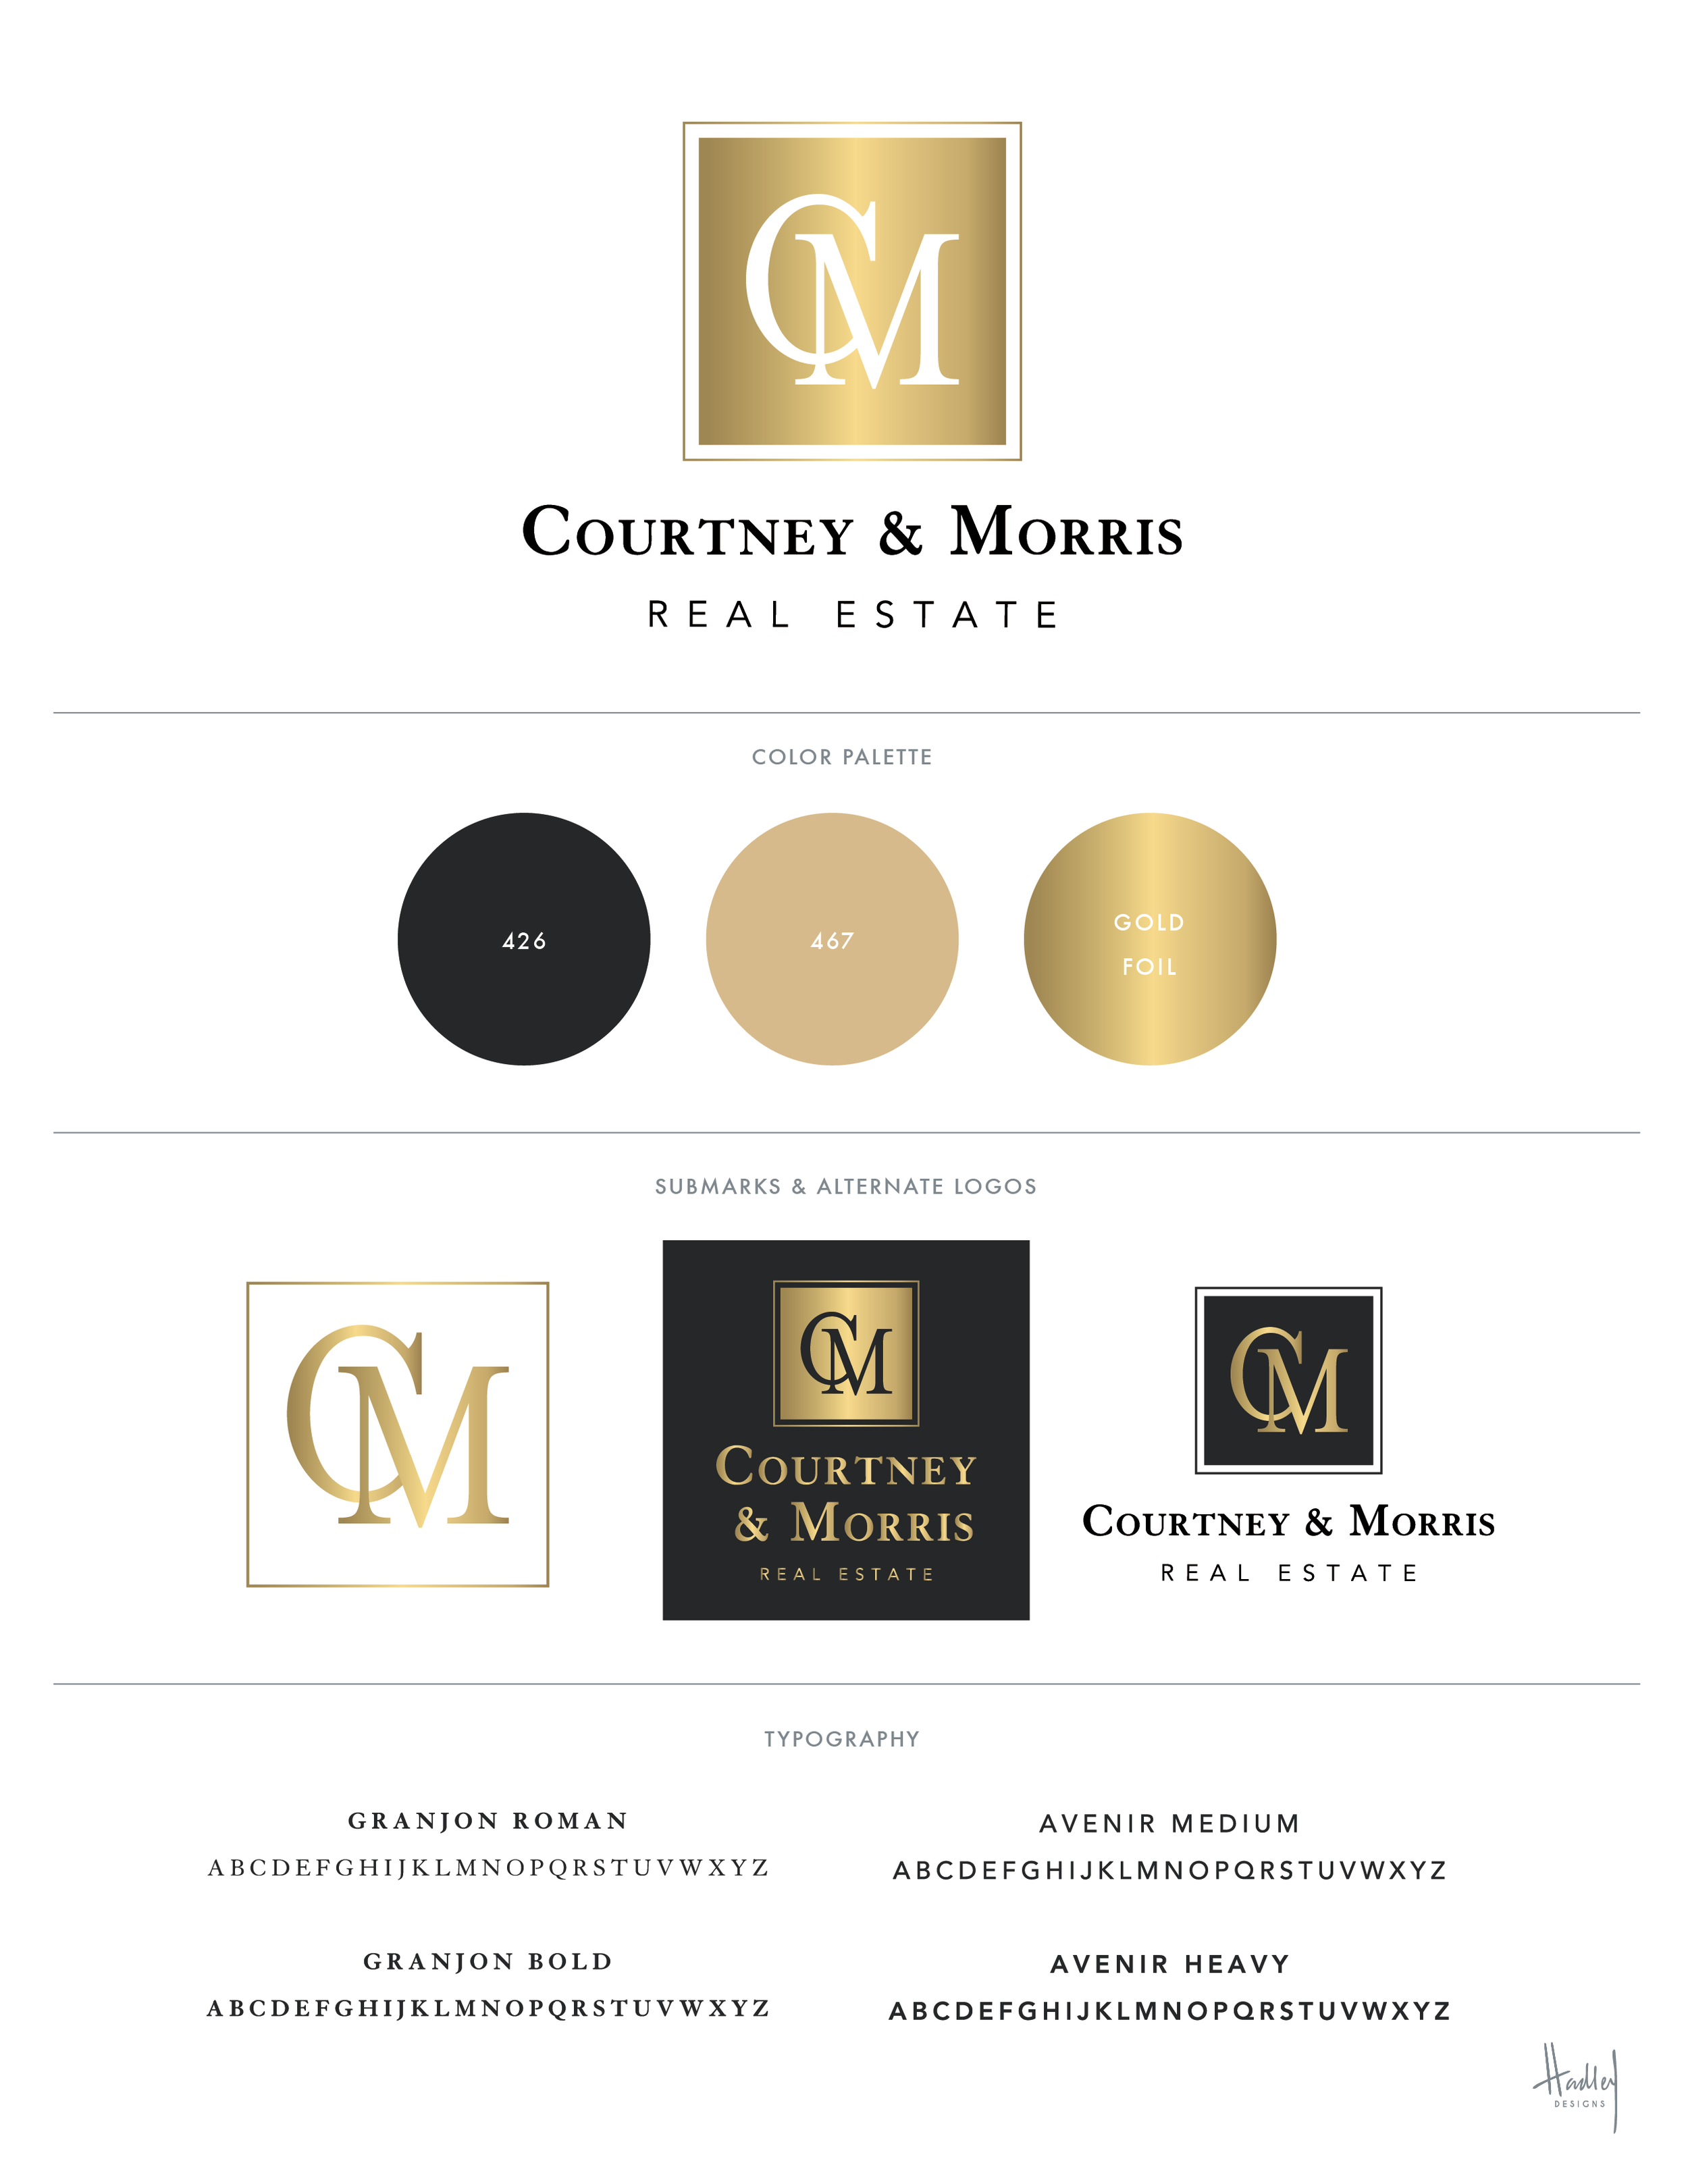 I just finished the new branding for Courtney & Morris Real Estate. They were undergoing some changes and were ready for a new look. View their  current website (with old branding)to see the transformation. New website is in the works...